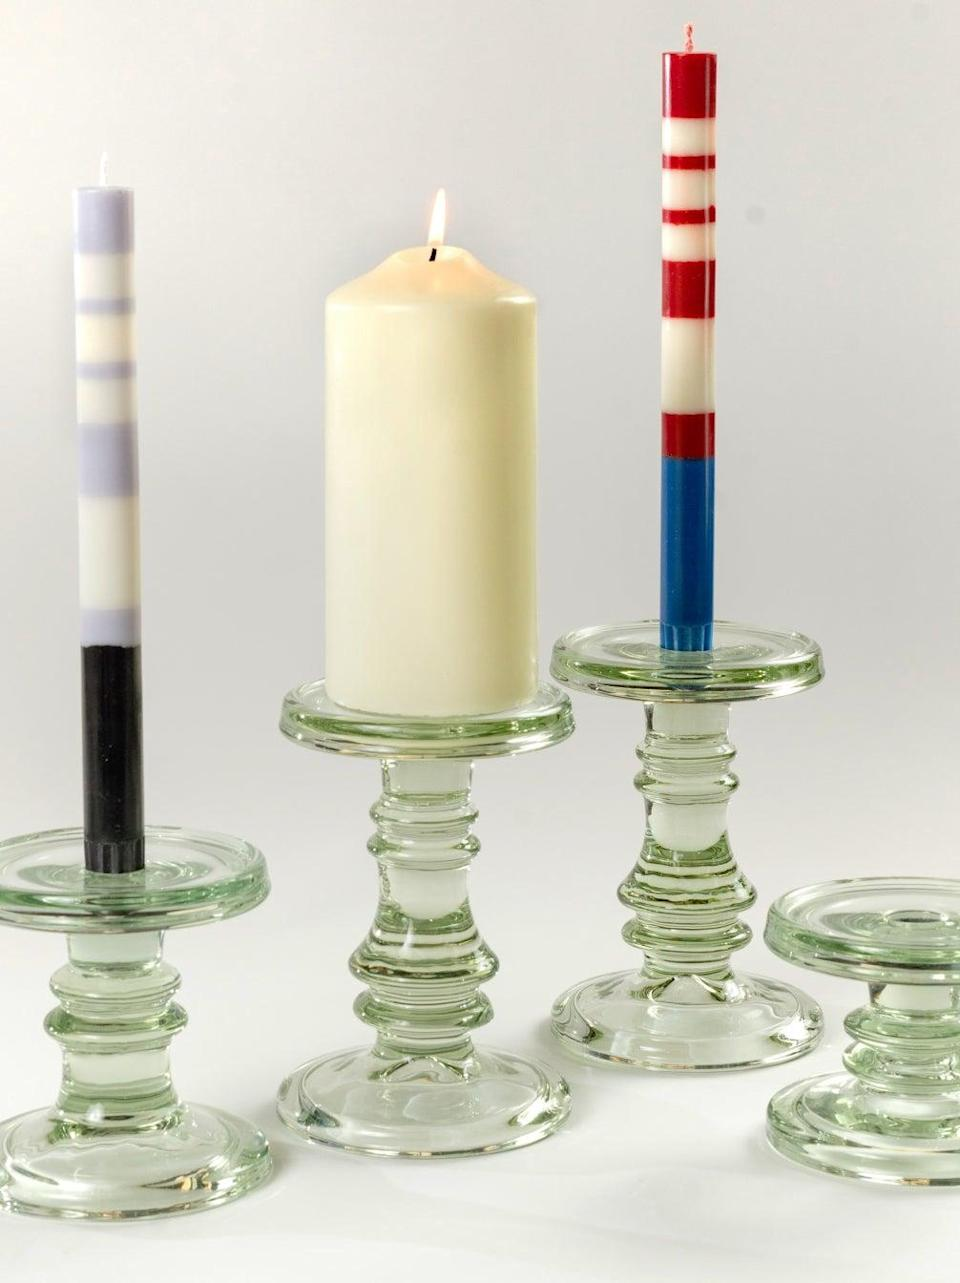 """<br><br><strong>REfound</strong> Chunky Glass Candlesticks, $, available at <a href=""""https://www.re-foundobjects.com/product/view/chunky-glass-candlesticks?cat=53"""" rel=""""nofollow noopener"""" target=""""_blank"""" data-ylk=""""slk:REfound"""" class=""""link rapid-noclick-resp"""">REfound</a>"""